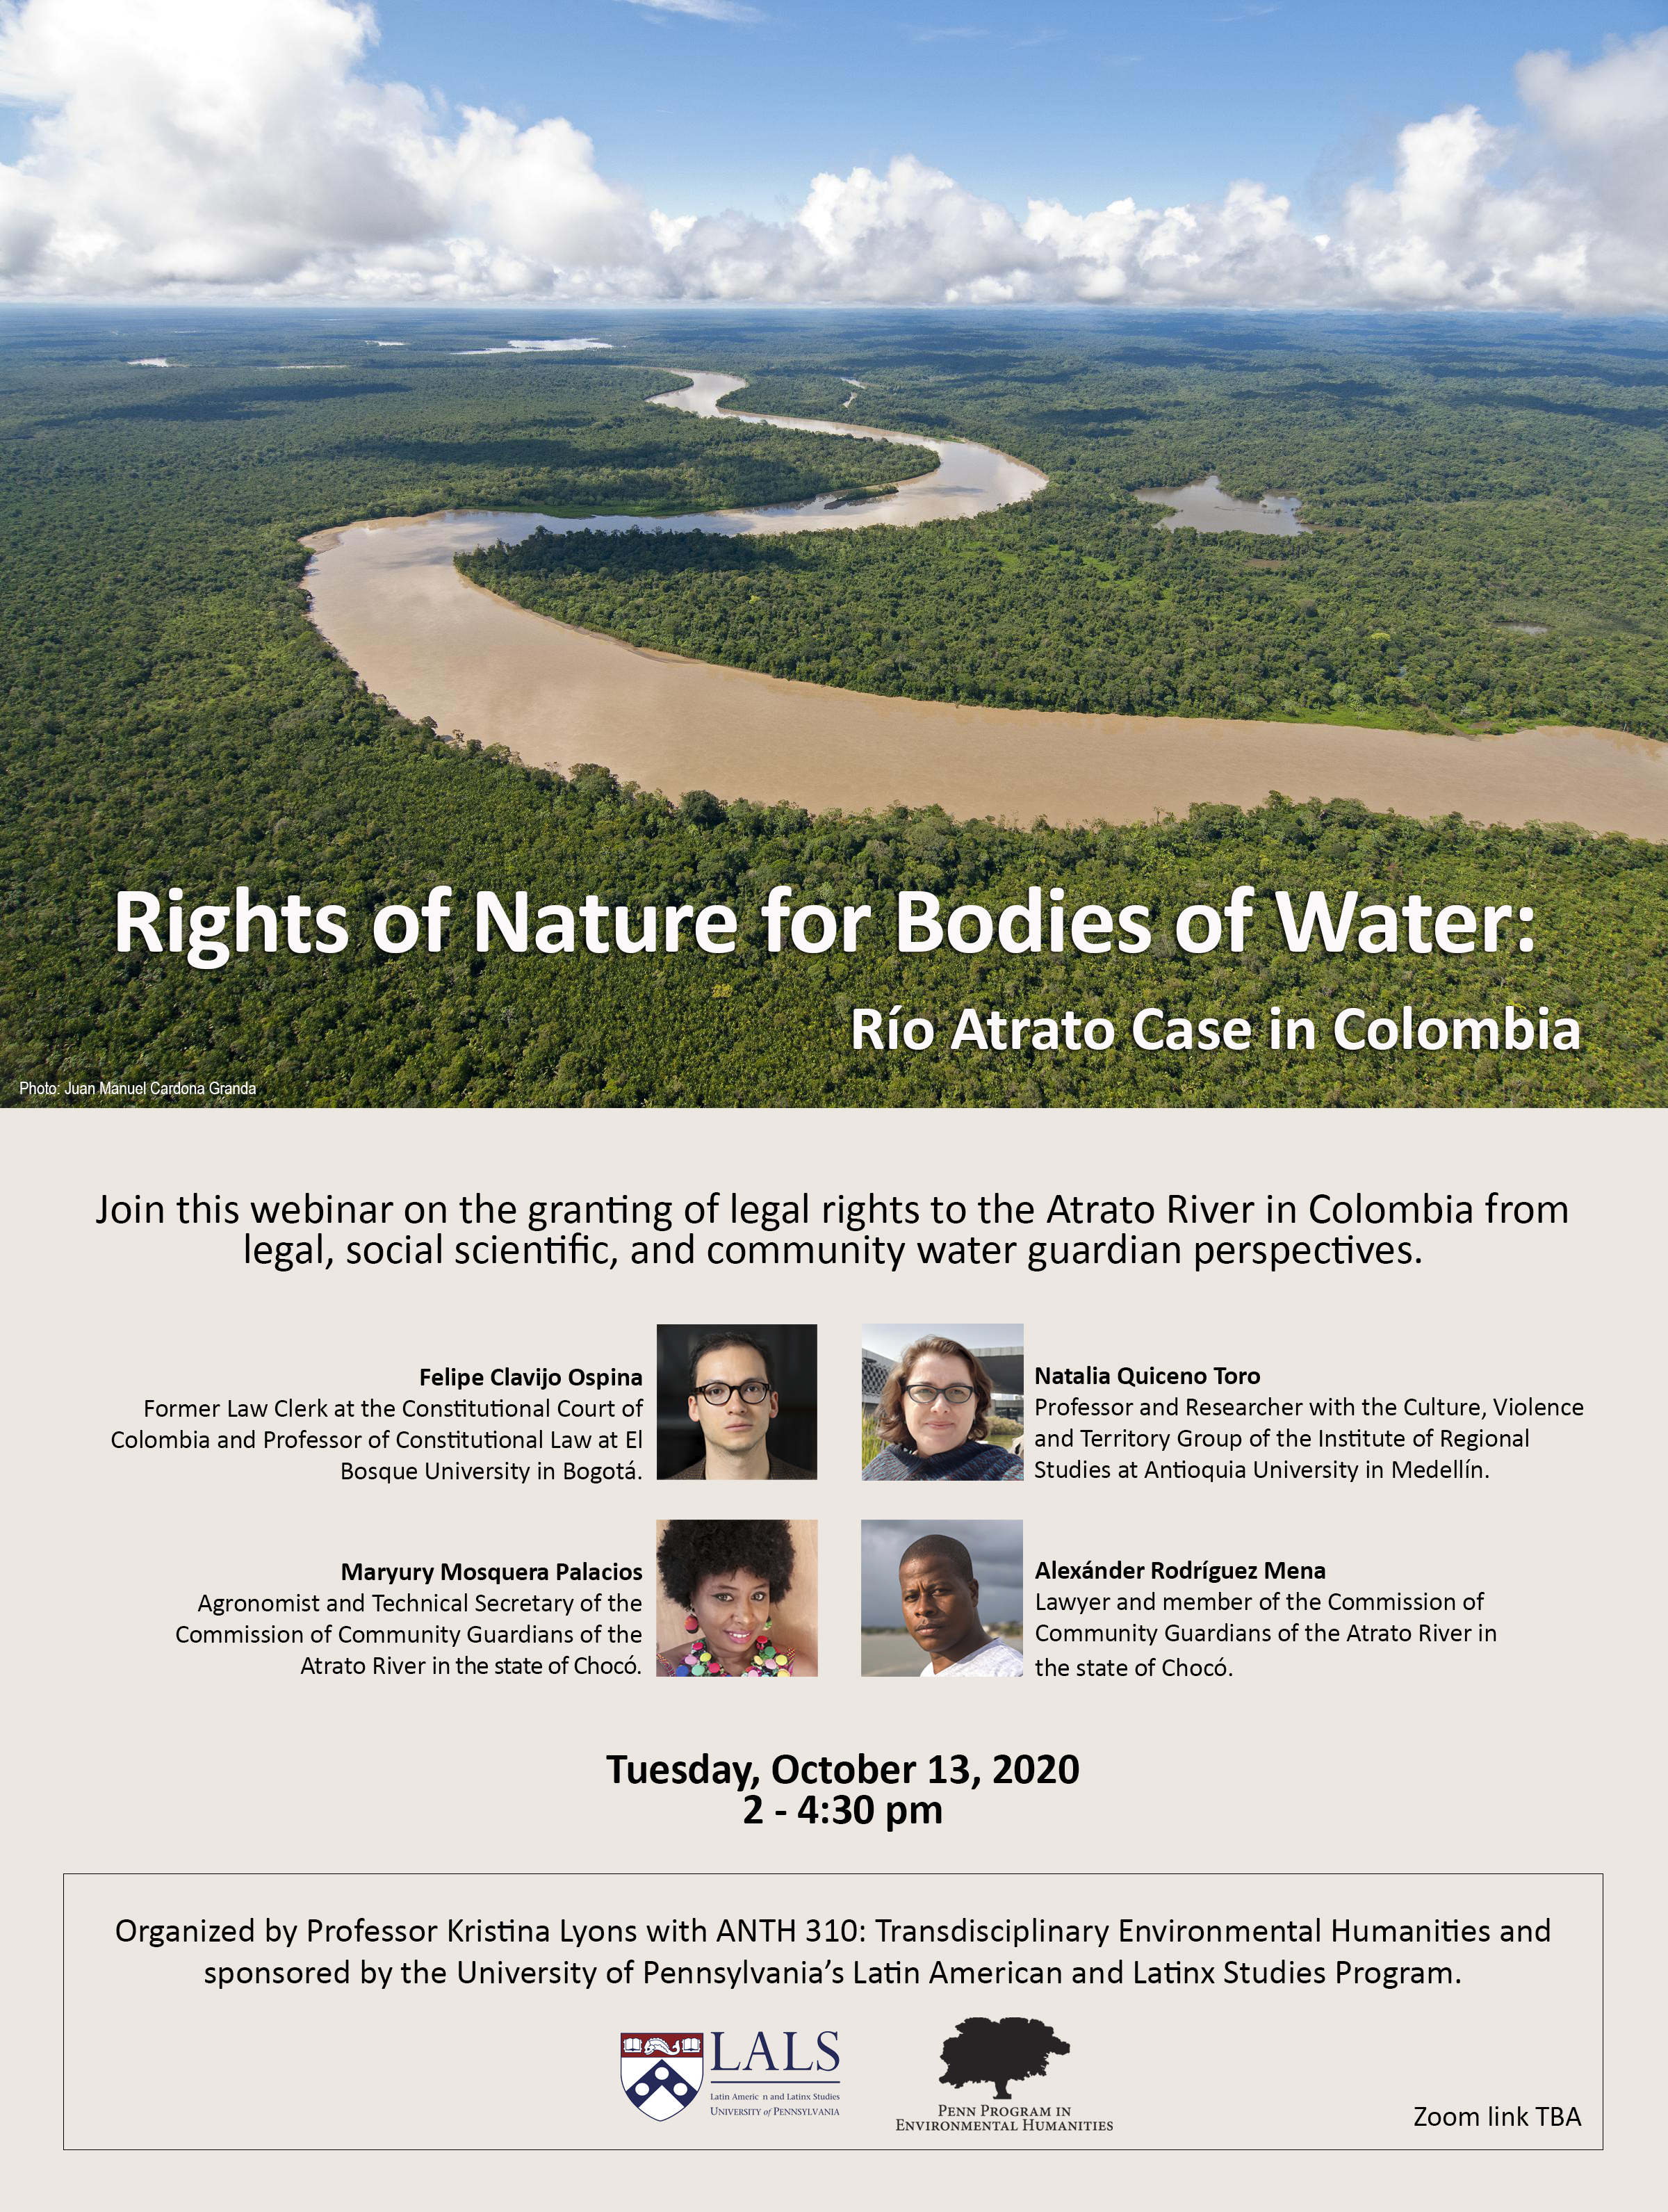 This is an event flyer for Rights of Nature for Bodies of Water displaying a photo of the Río Atrato